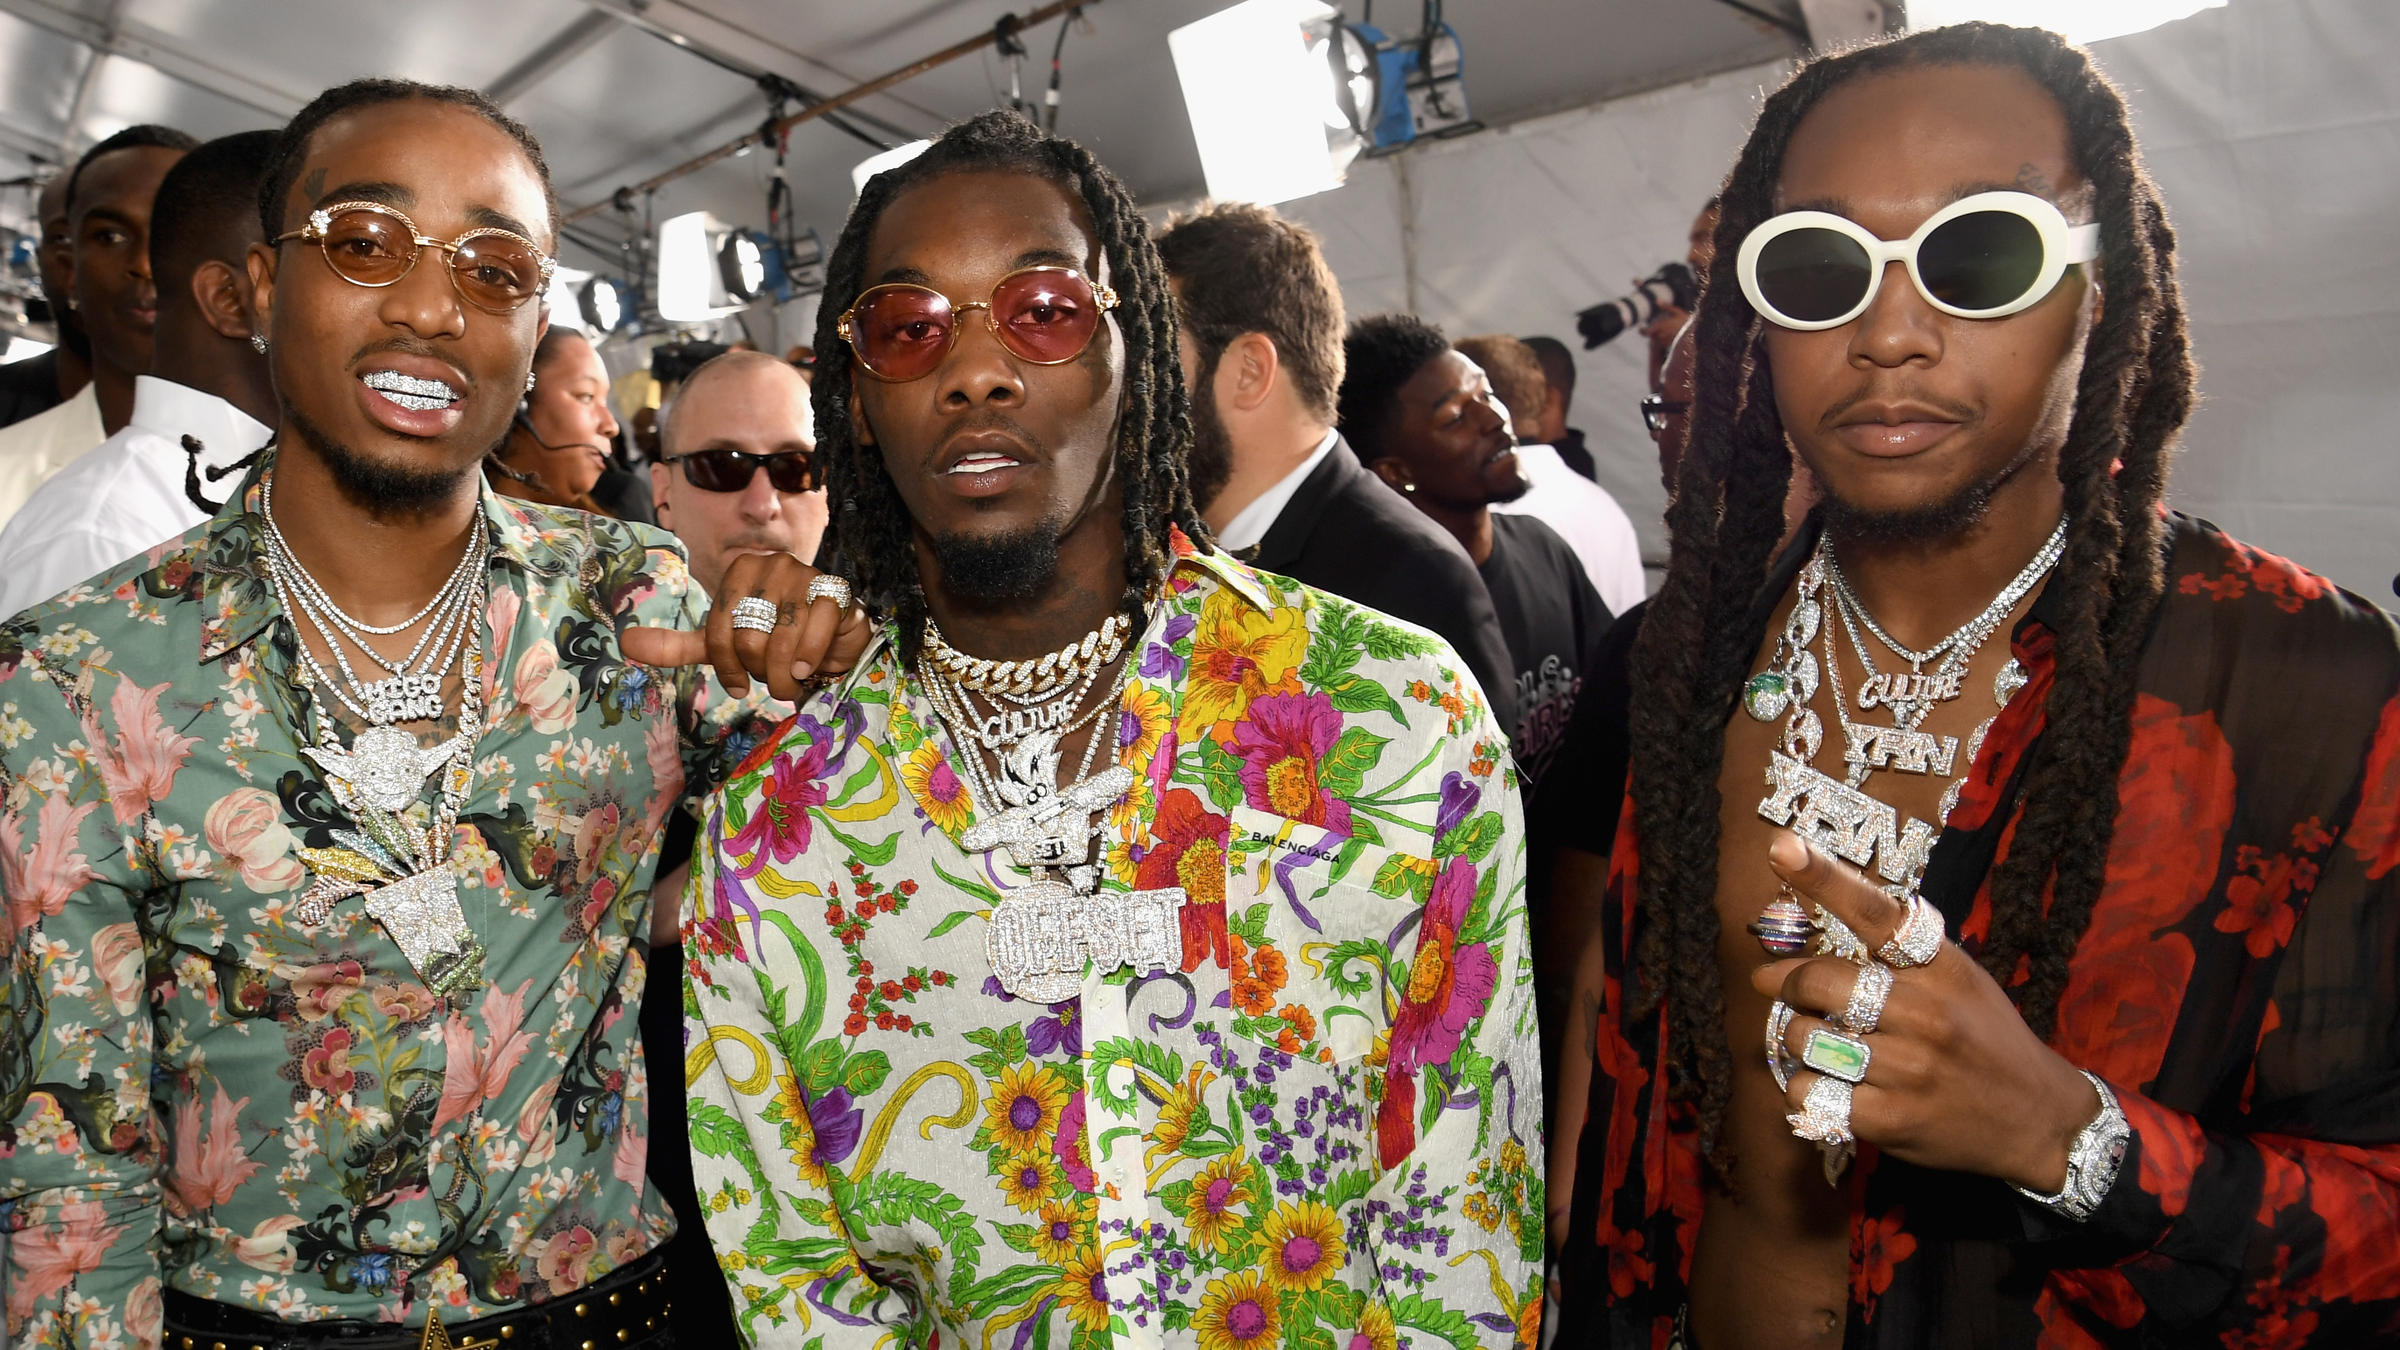 Migos Drop New Album 'Culture II'; Perform 'Stir Fry' on 'Fallon'